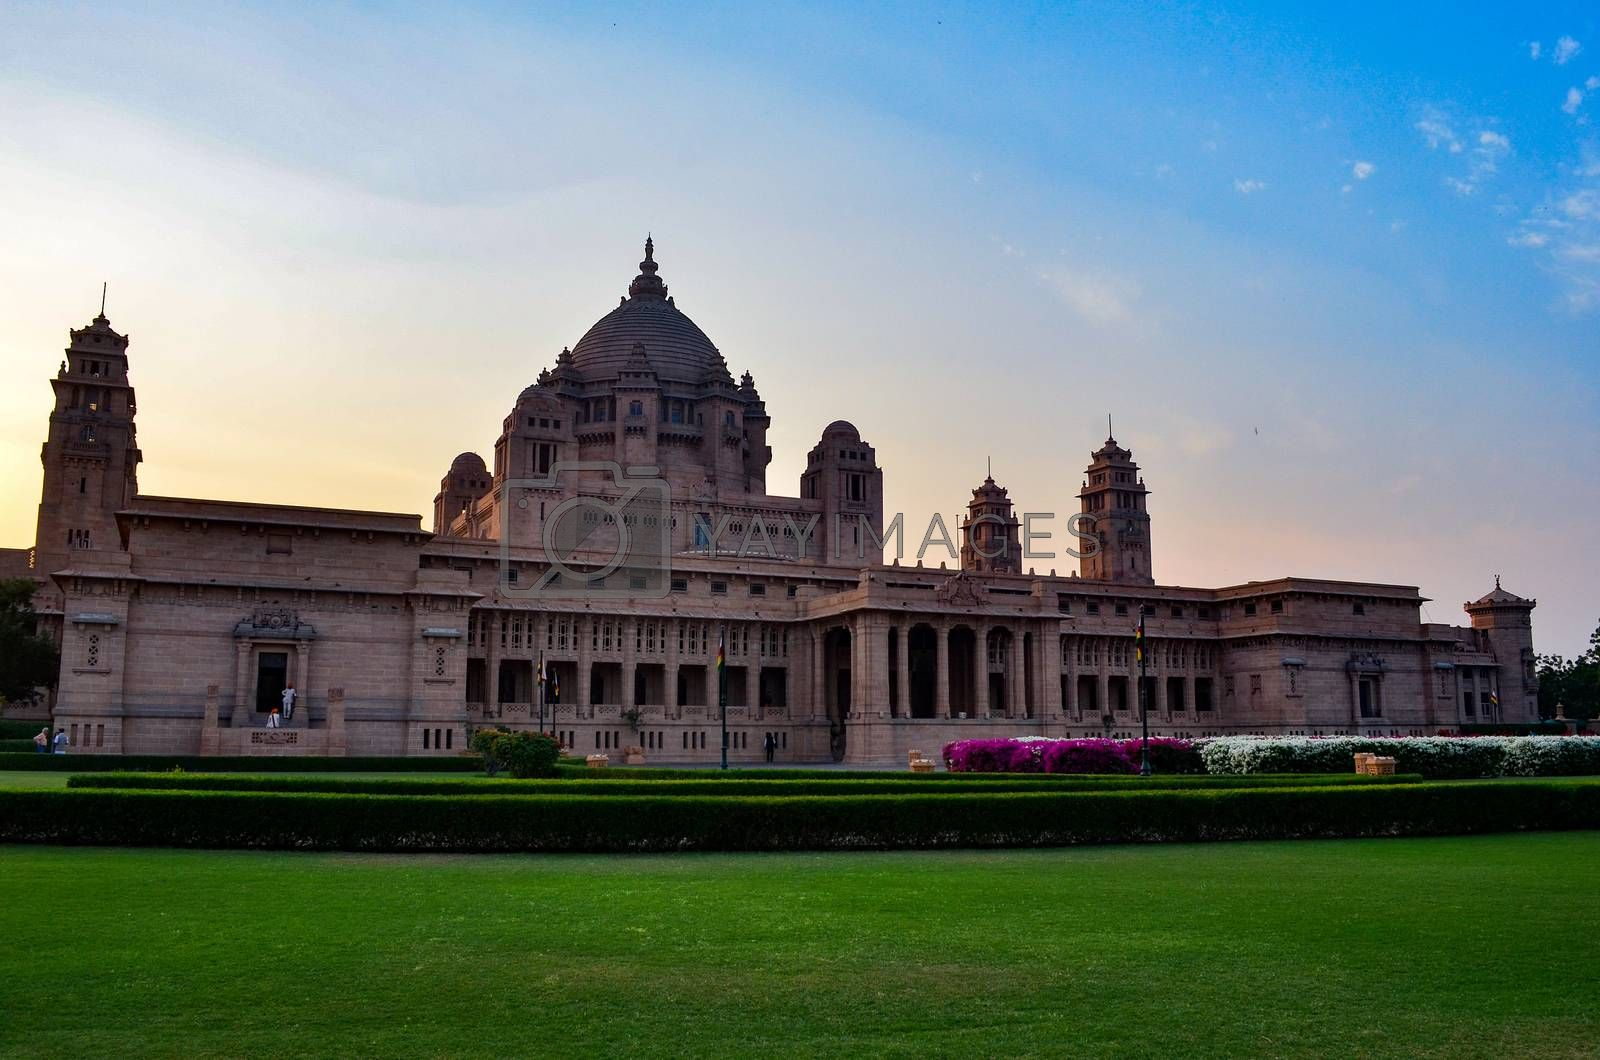 Majestic view of the Umaid Bhawan palace and hotel against a setting sun in Jodhpur, Rajasthan, India. This elegant hotel in a grand building was once home to the Jodphur royal family.